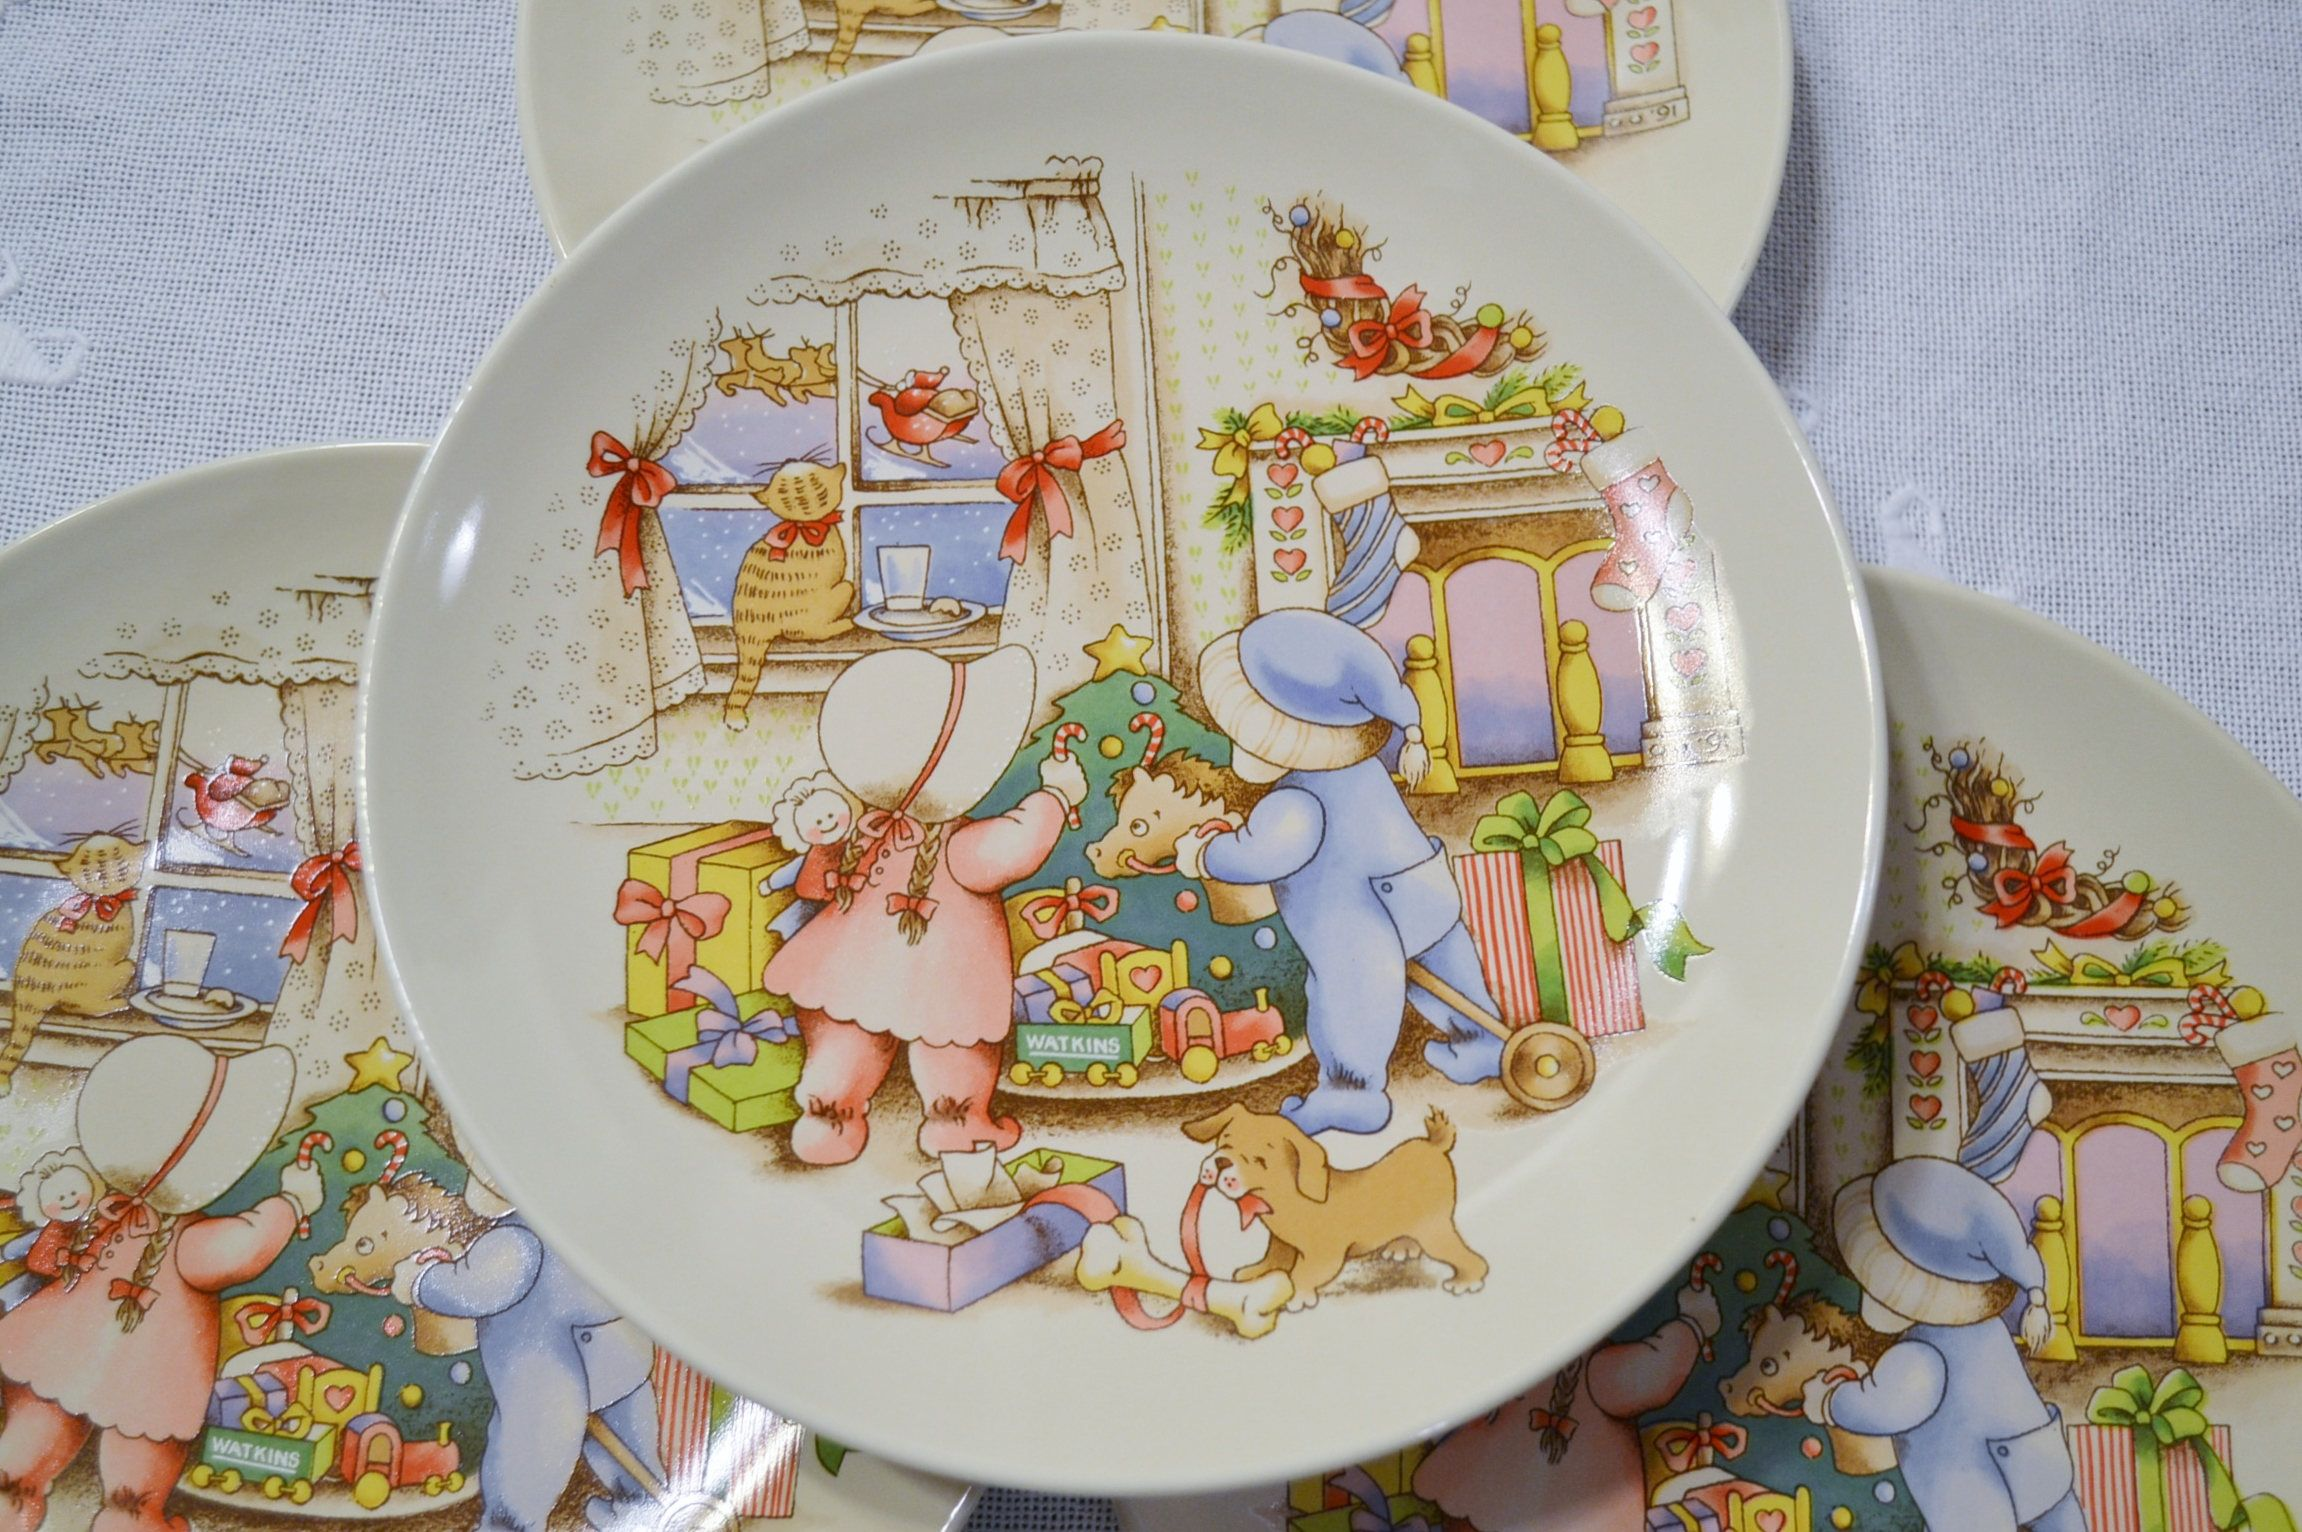 Vintage Country Kids Dessert Plate Set of 4 Plate 3 of 6 Watkins Hearts Spring Collectible & Vintage Country Kids Dessert Plate Set of 4 Plate 3 of 6 Watkins ...